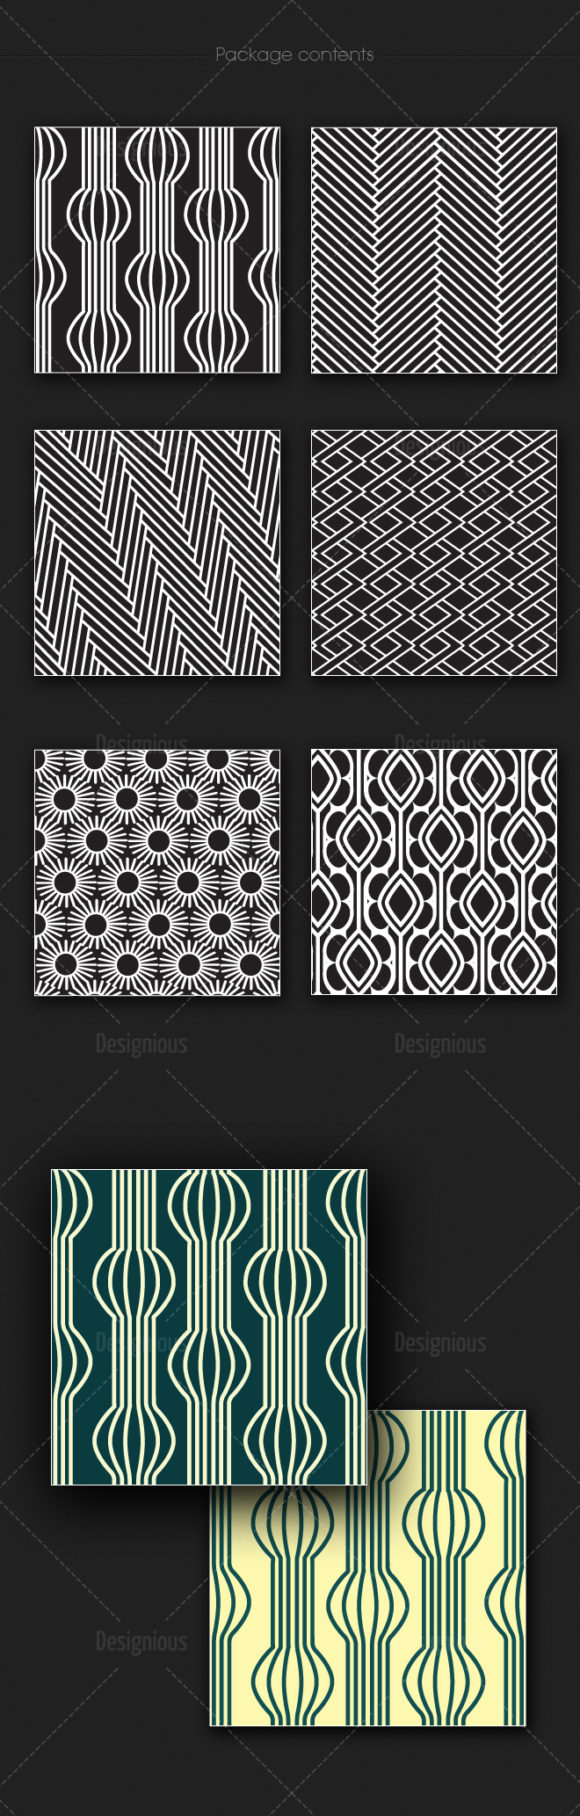 Seamless Patterns Vector Pack 174 products designious vector seamless 174 large